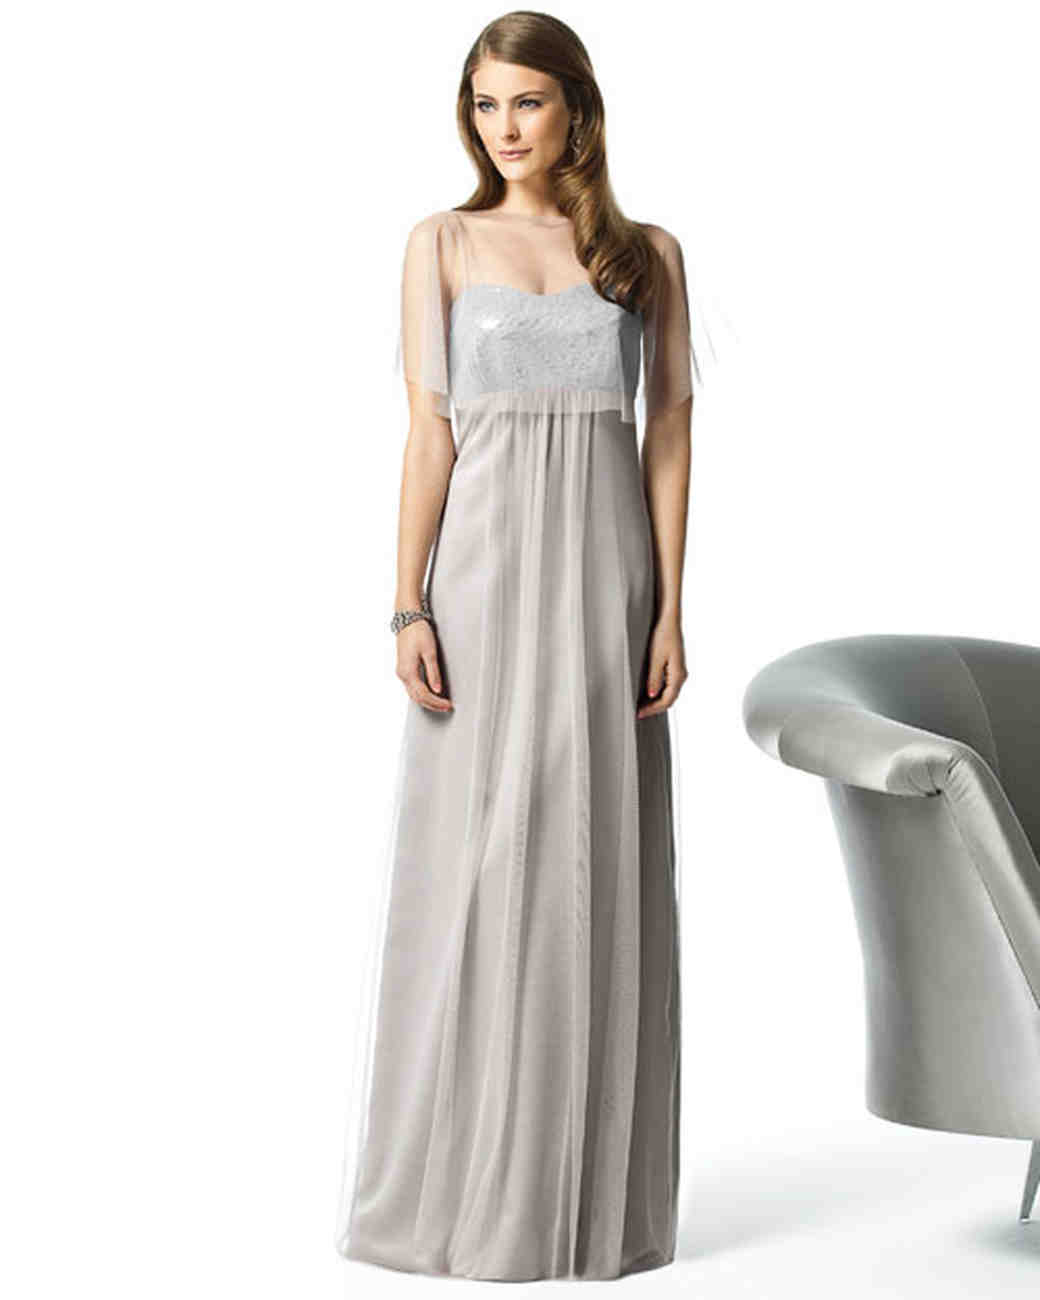 Silver gray bridesmaid dresses martha stewart weddings ombrellifo Choice Image